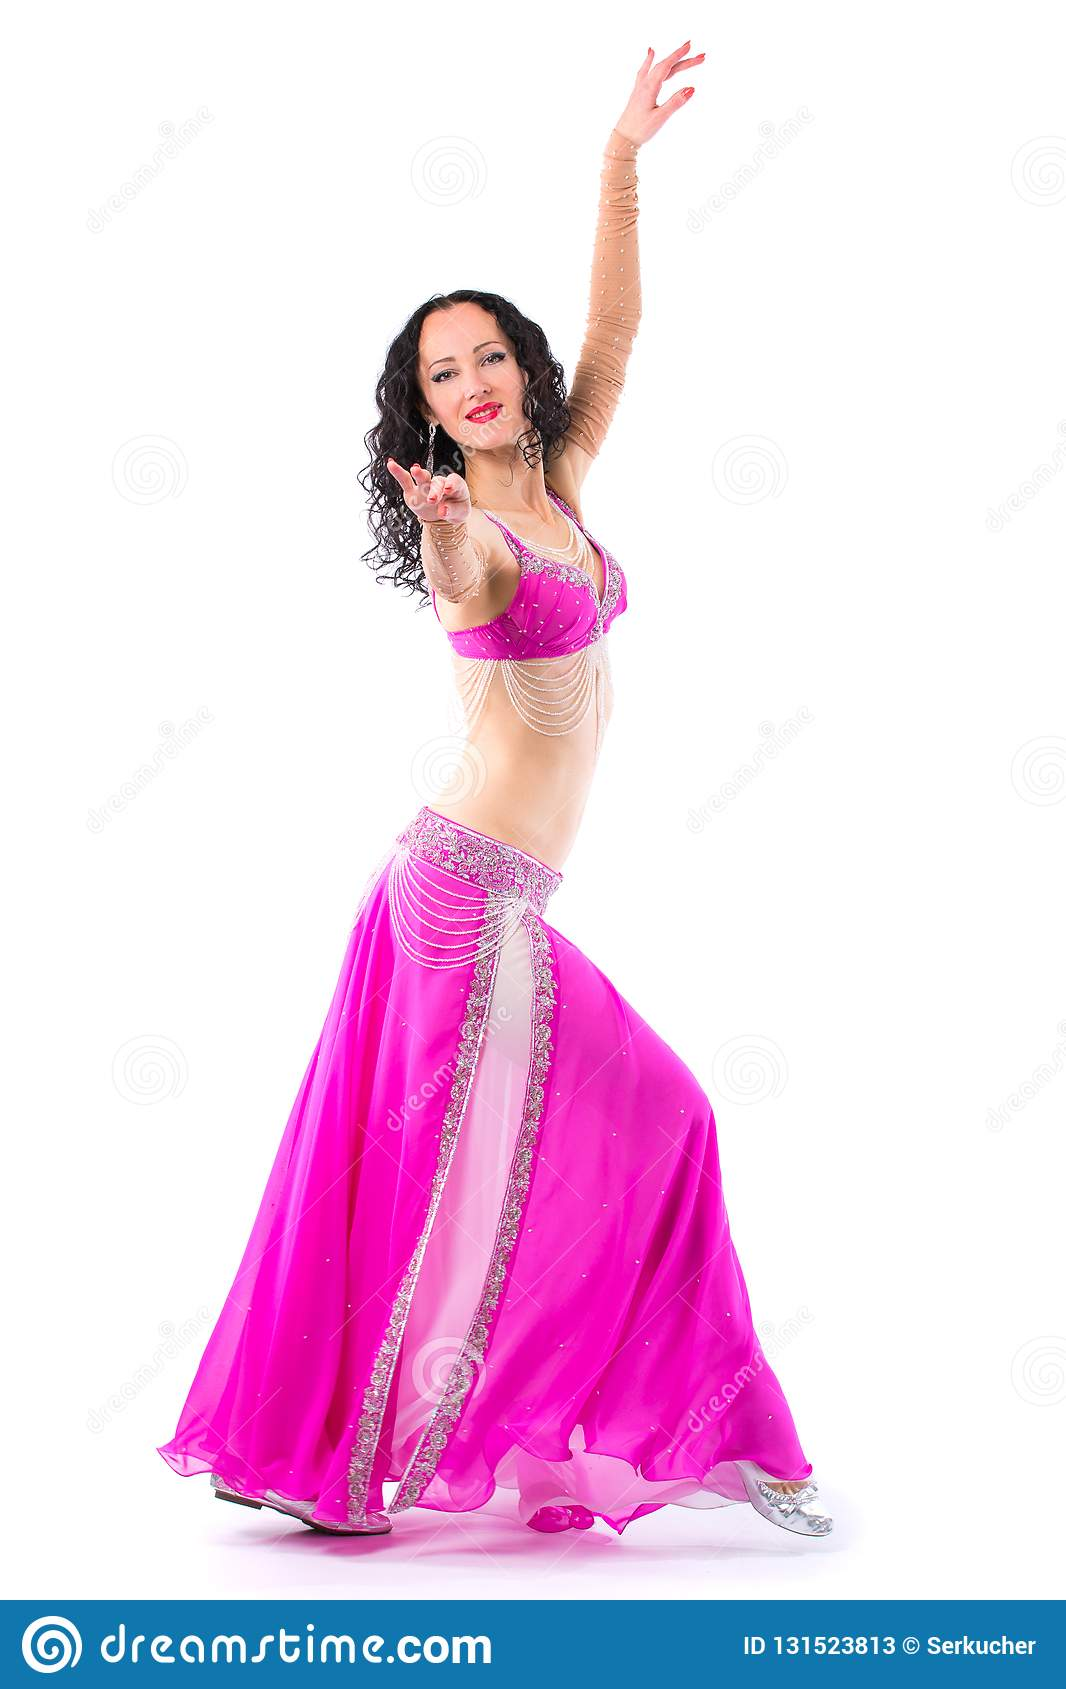 cb7a767ae girl dancing belly dance. The girl is froze in a dance position. Wonderful  brunette in the pink dress of an oriental dancer. Isolated on a white  background